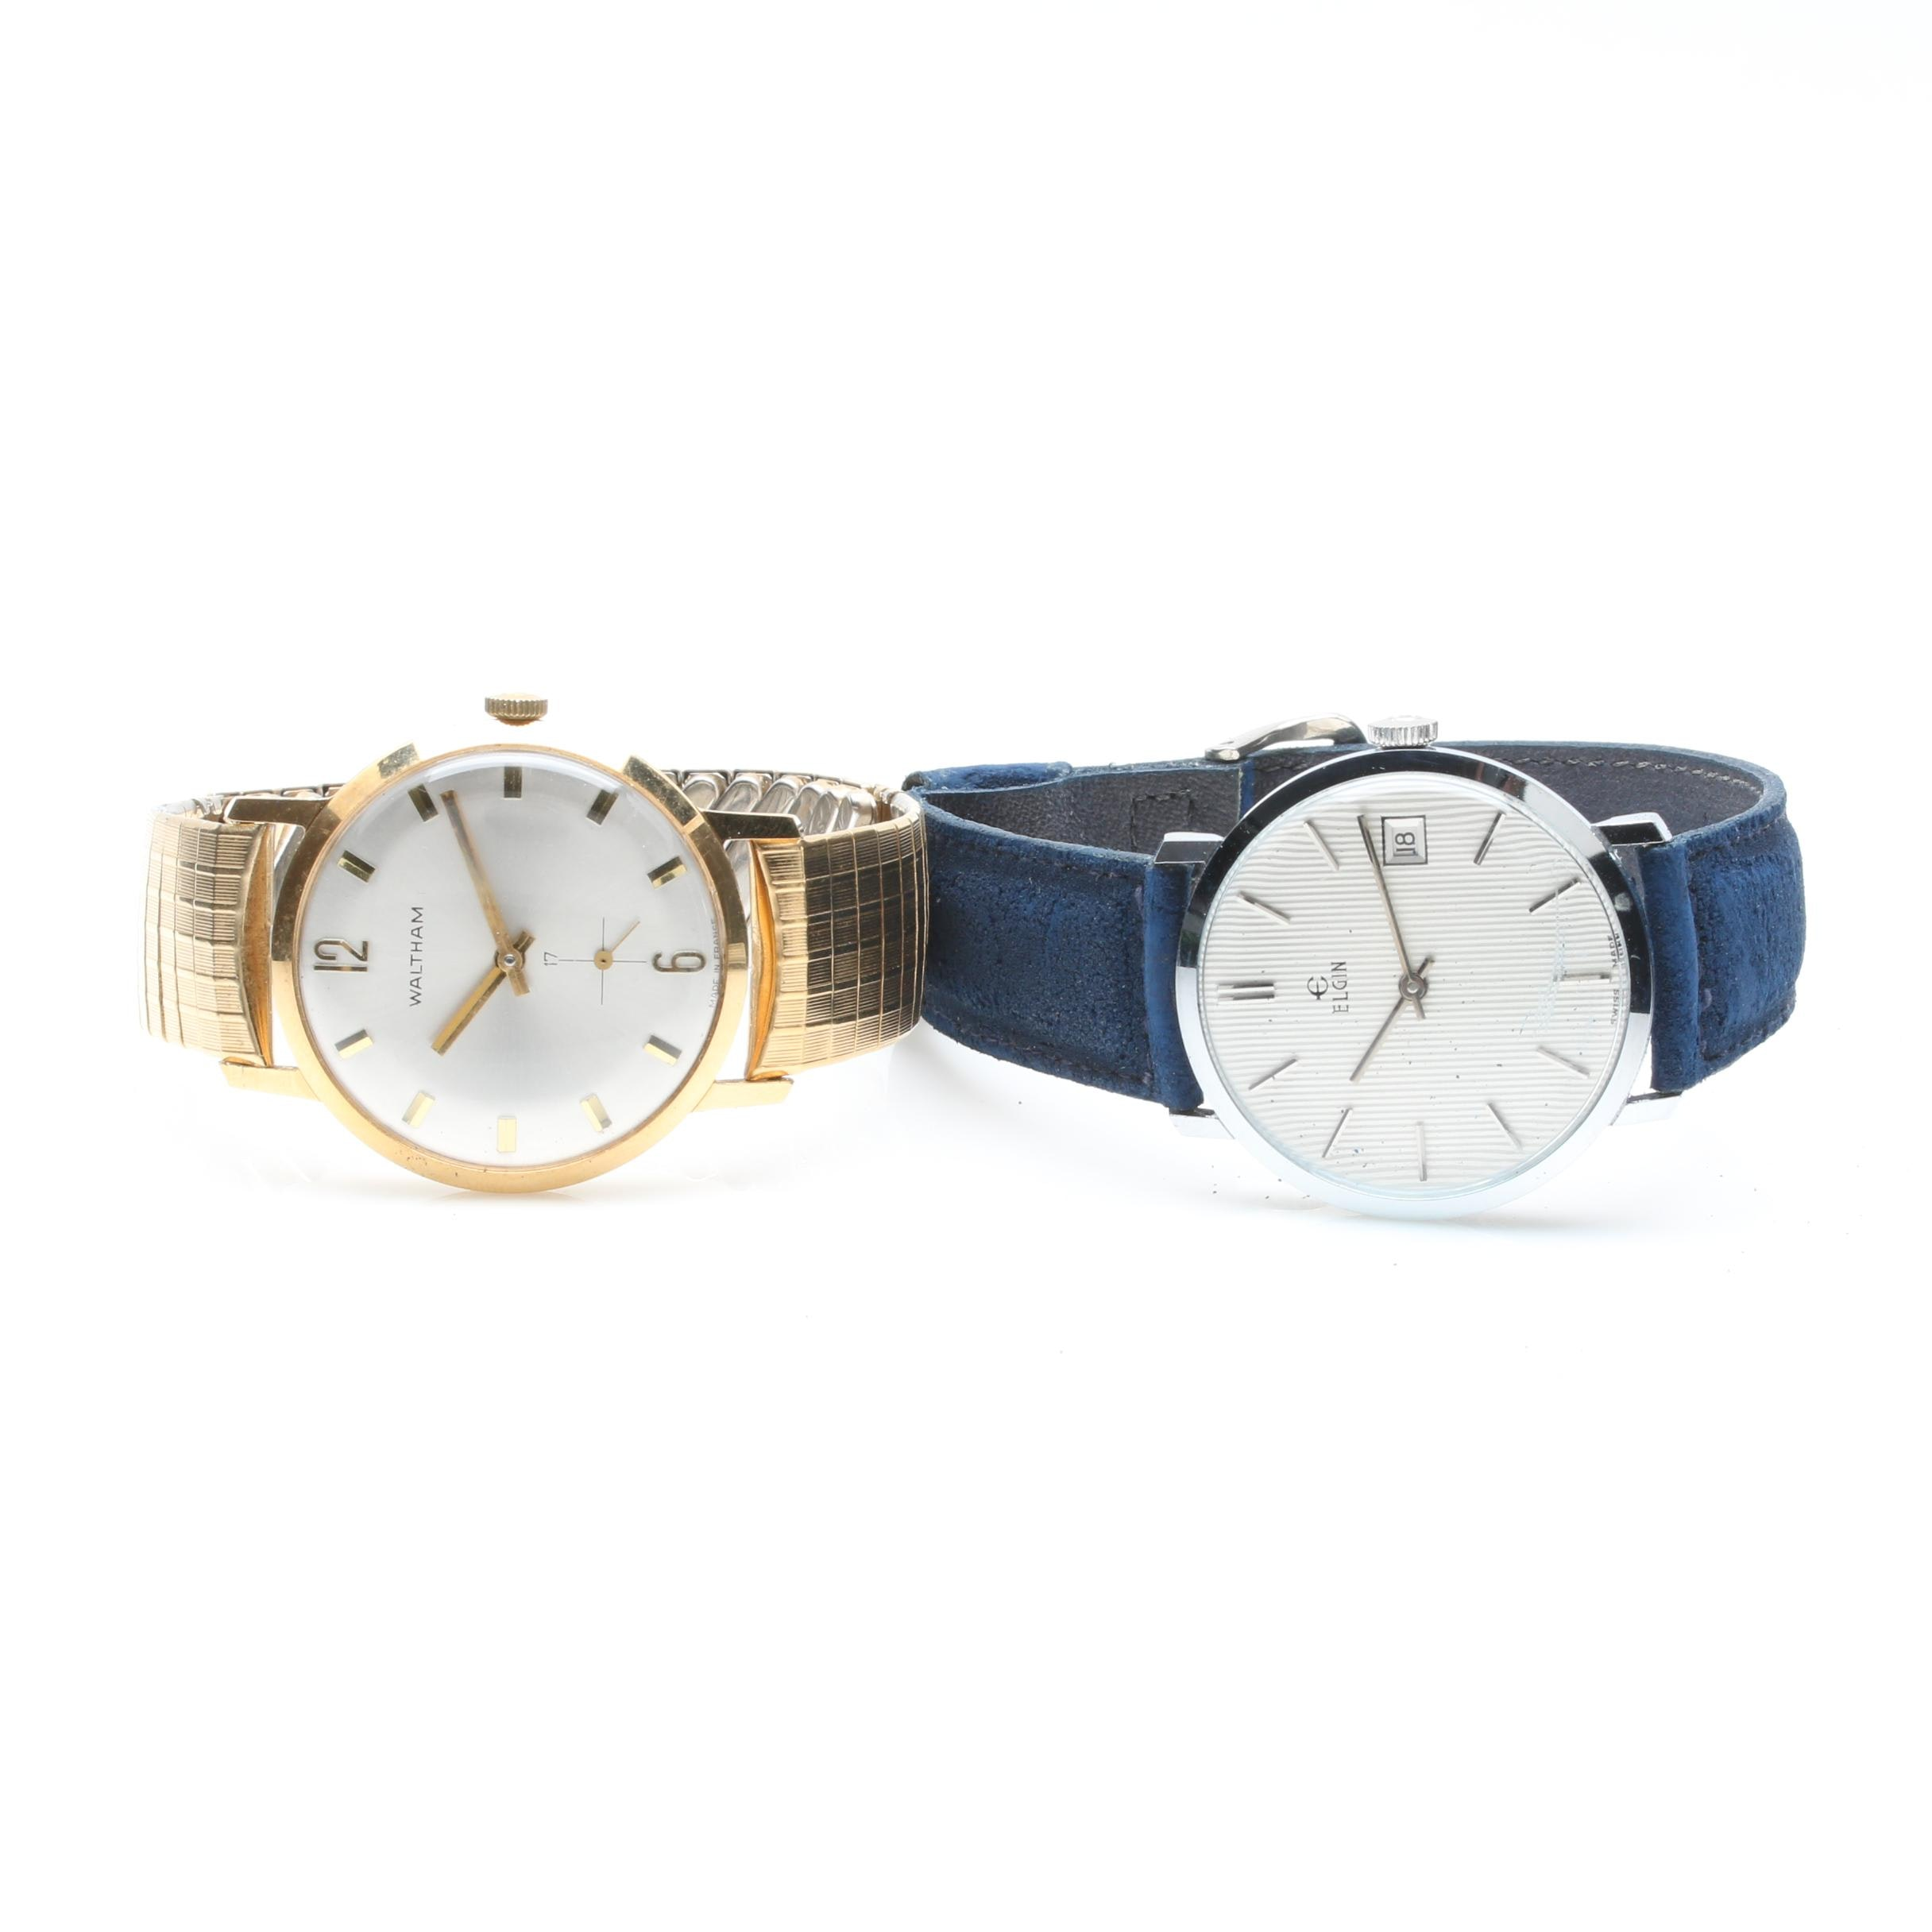 Elgin and Waltham Stainless Steel and Gold Tone Wristwatches